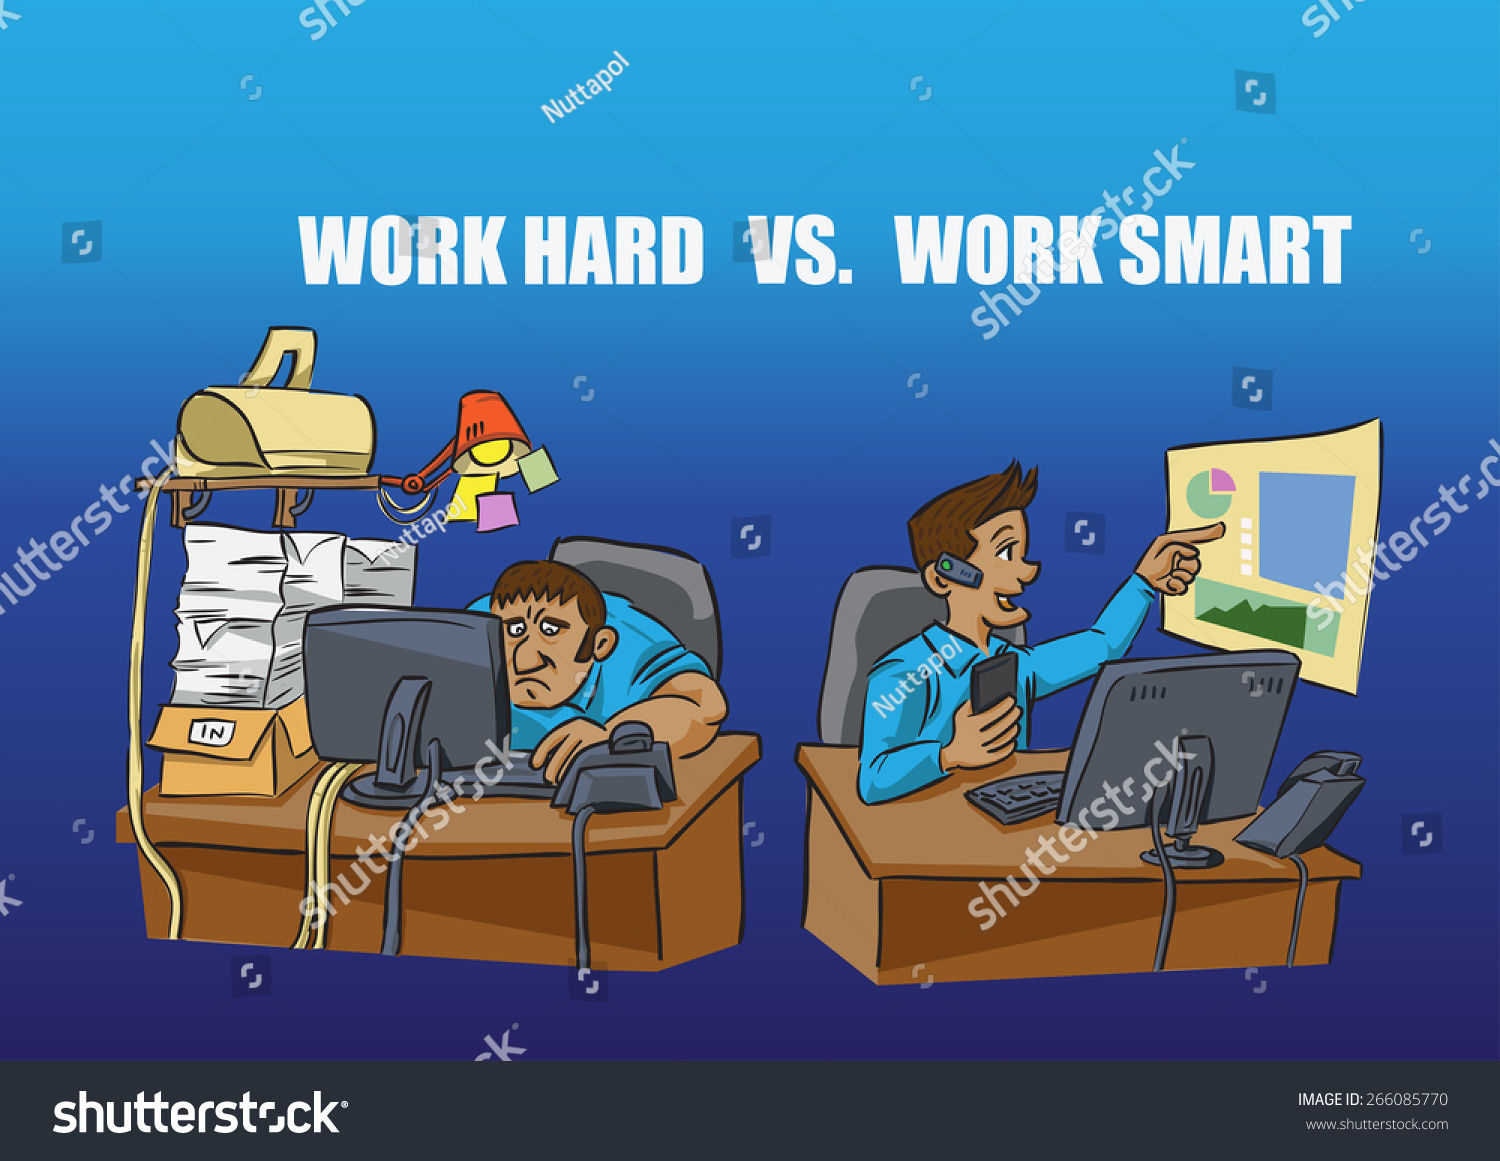 Is forex smart work or hard work